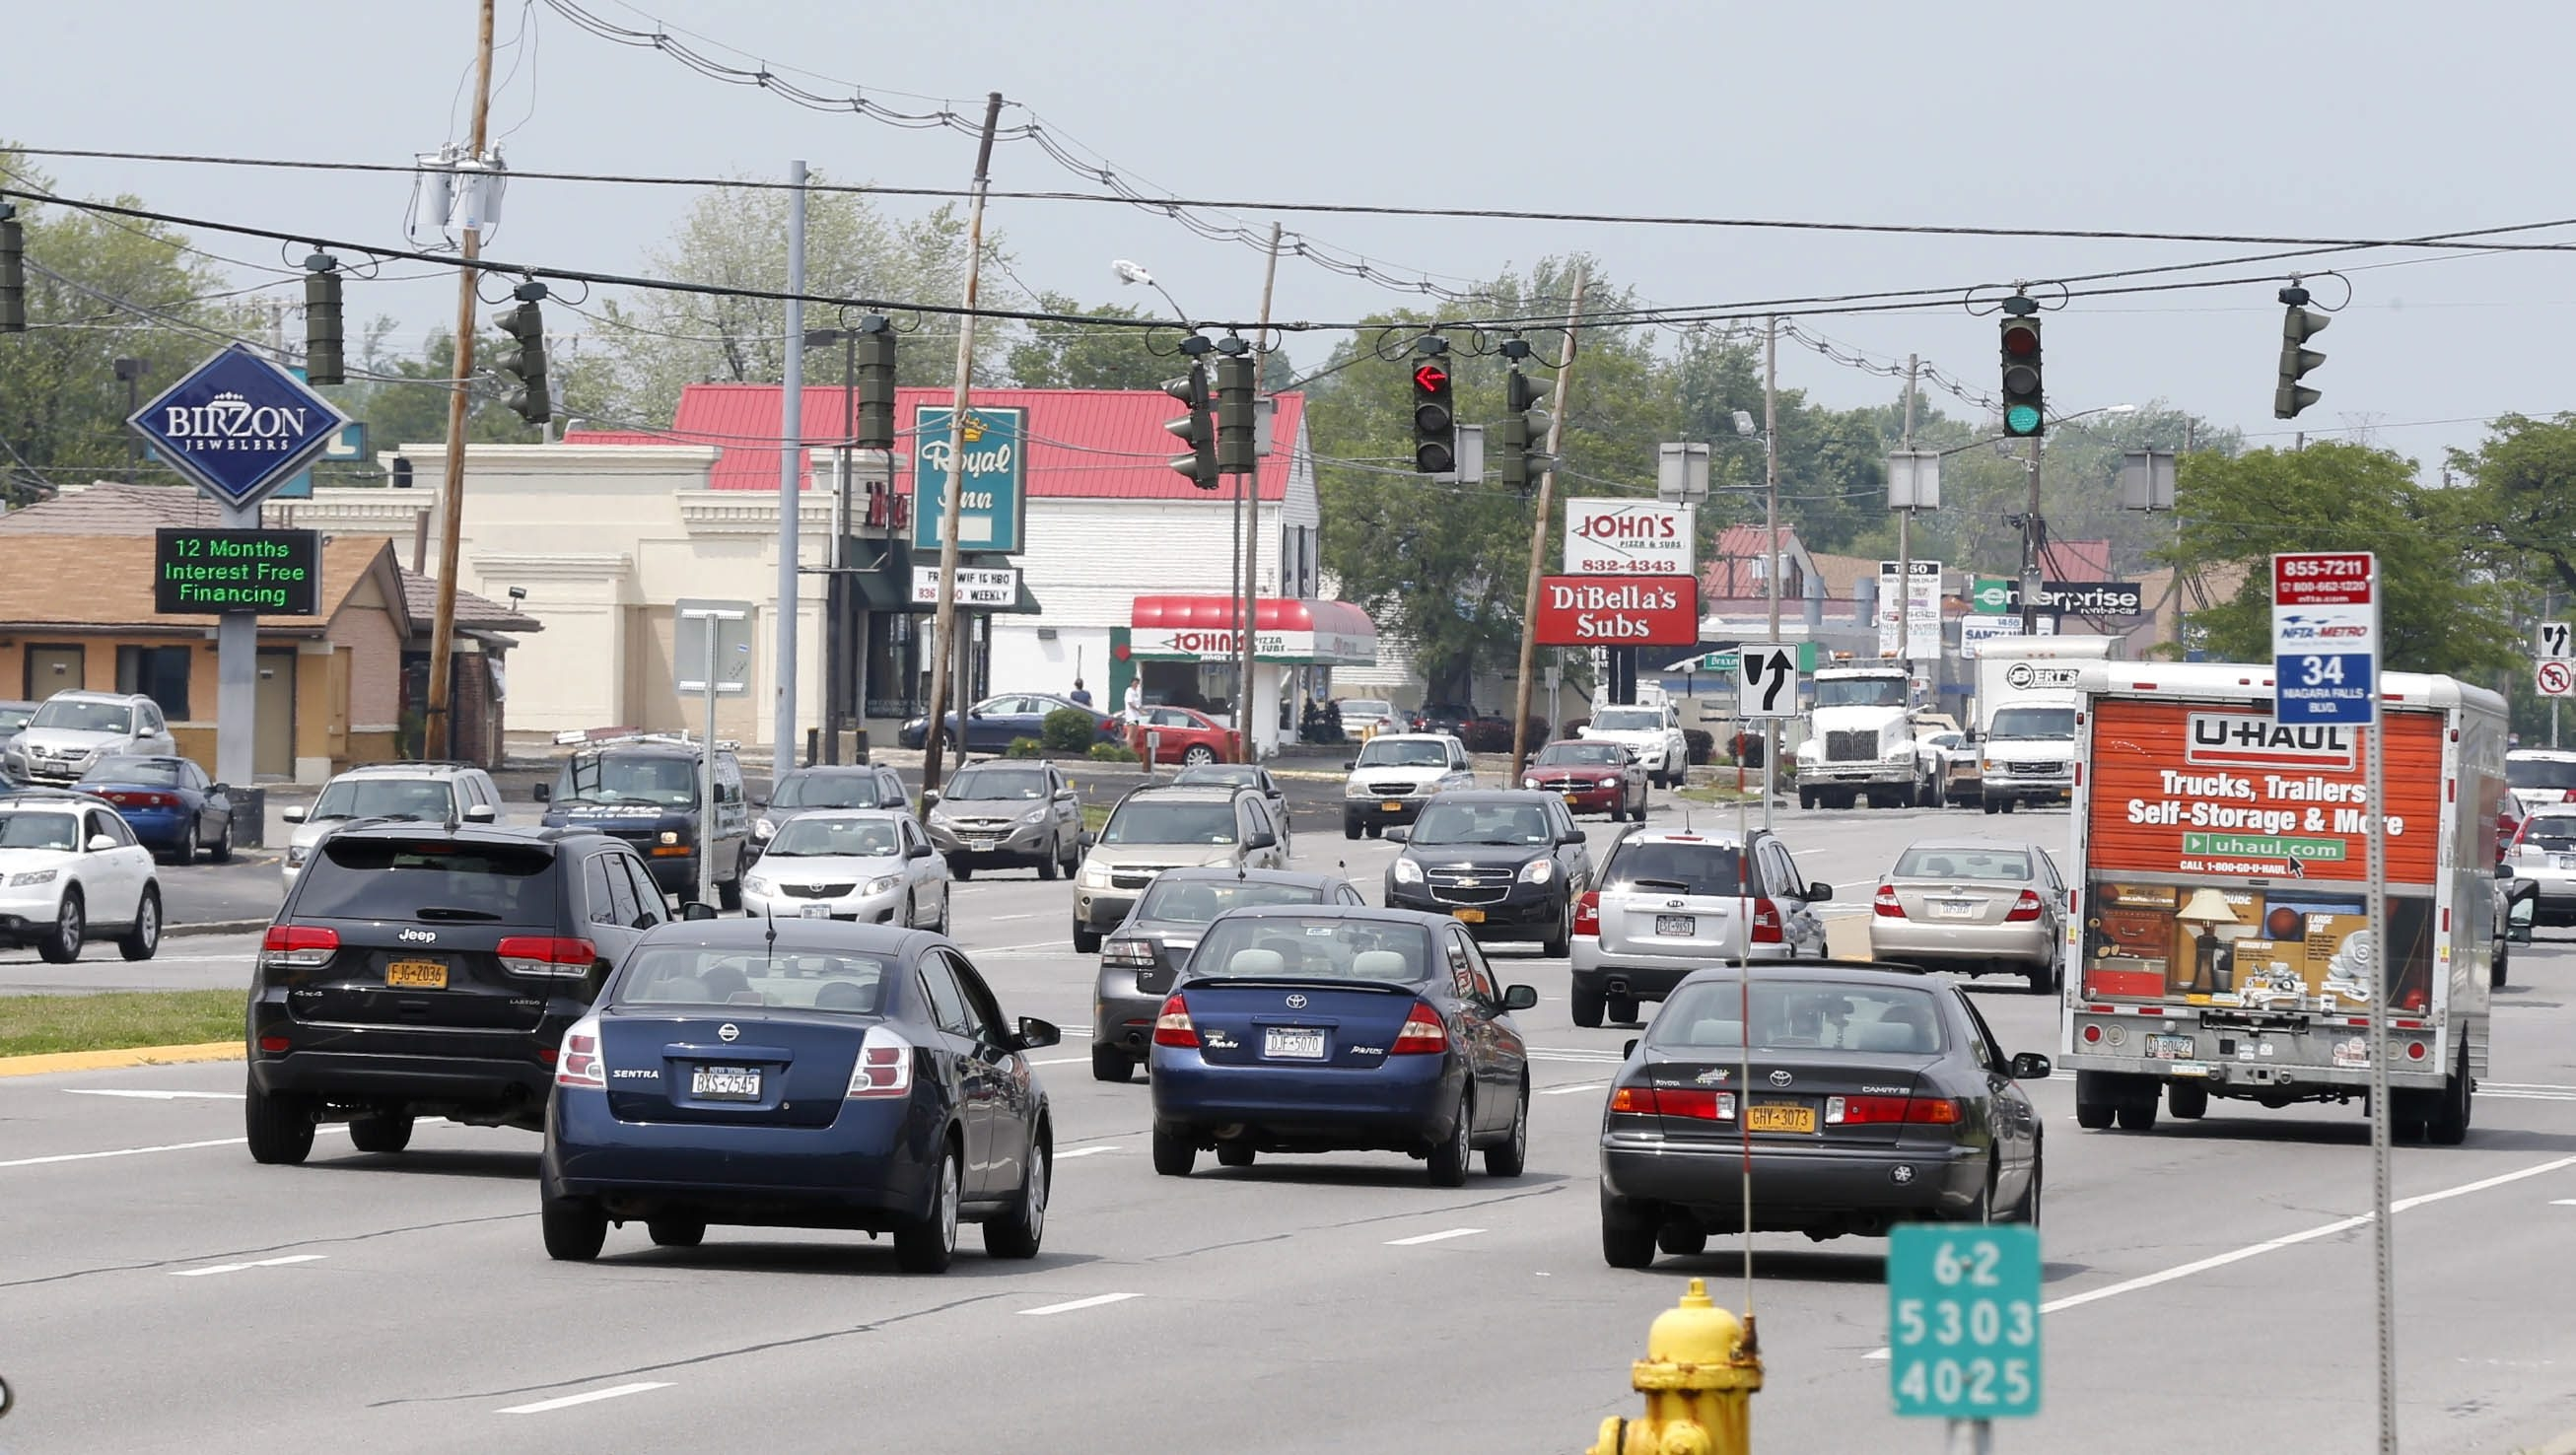 The towns of Amherst and Tonawanda have a shared interest in the congested thoroughfare that is Niagara Falls Boulevard.